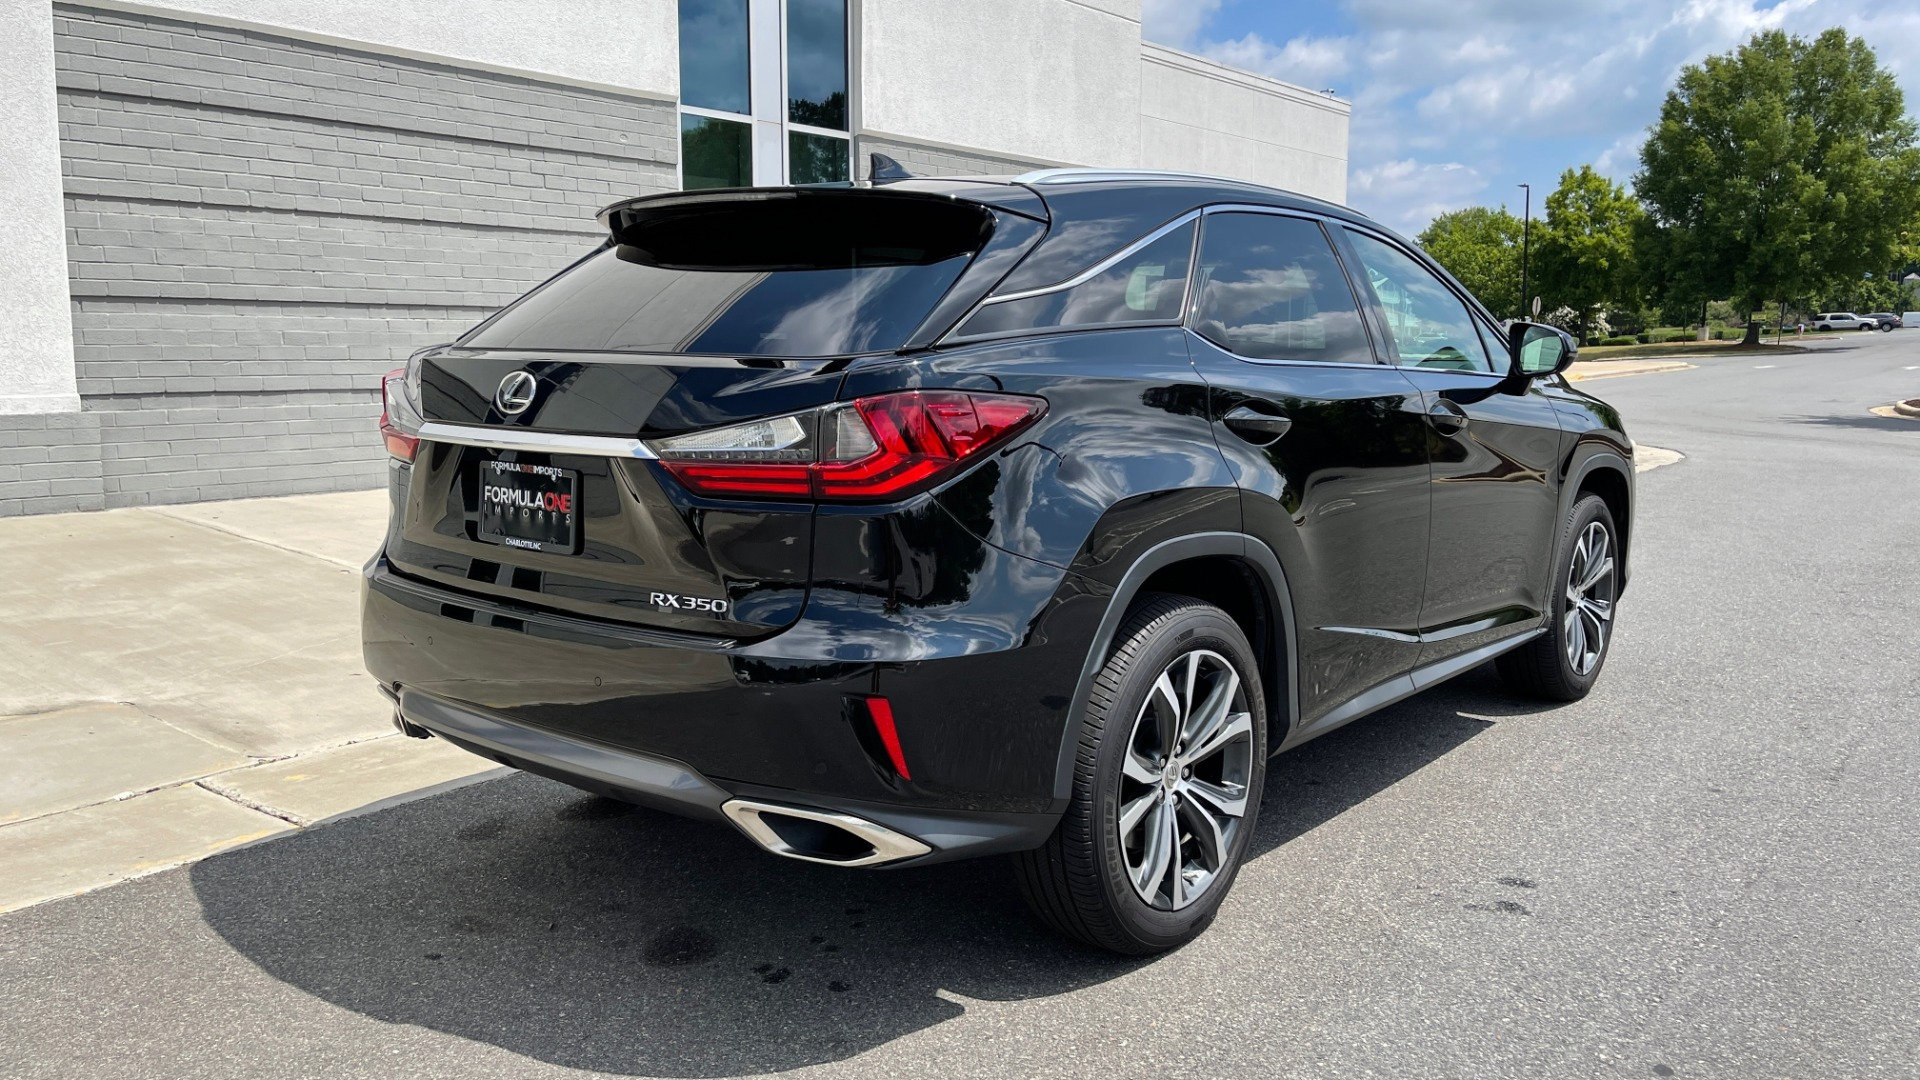 Used 2016 Lexus RX 350 PREMIUM / NAV / SUNROOF / BSM / PARK ASST / REARVIEW for sale $29,495 at Formula Imports in Charlotte NC 28227 2